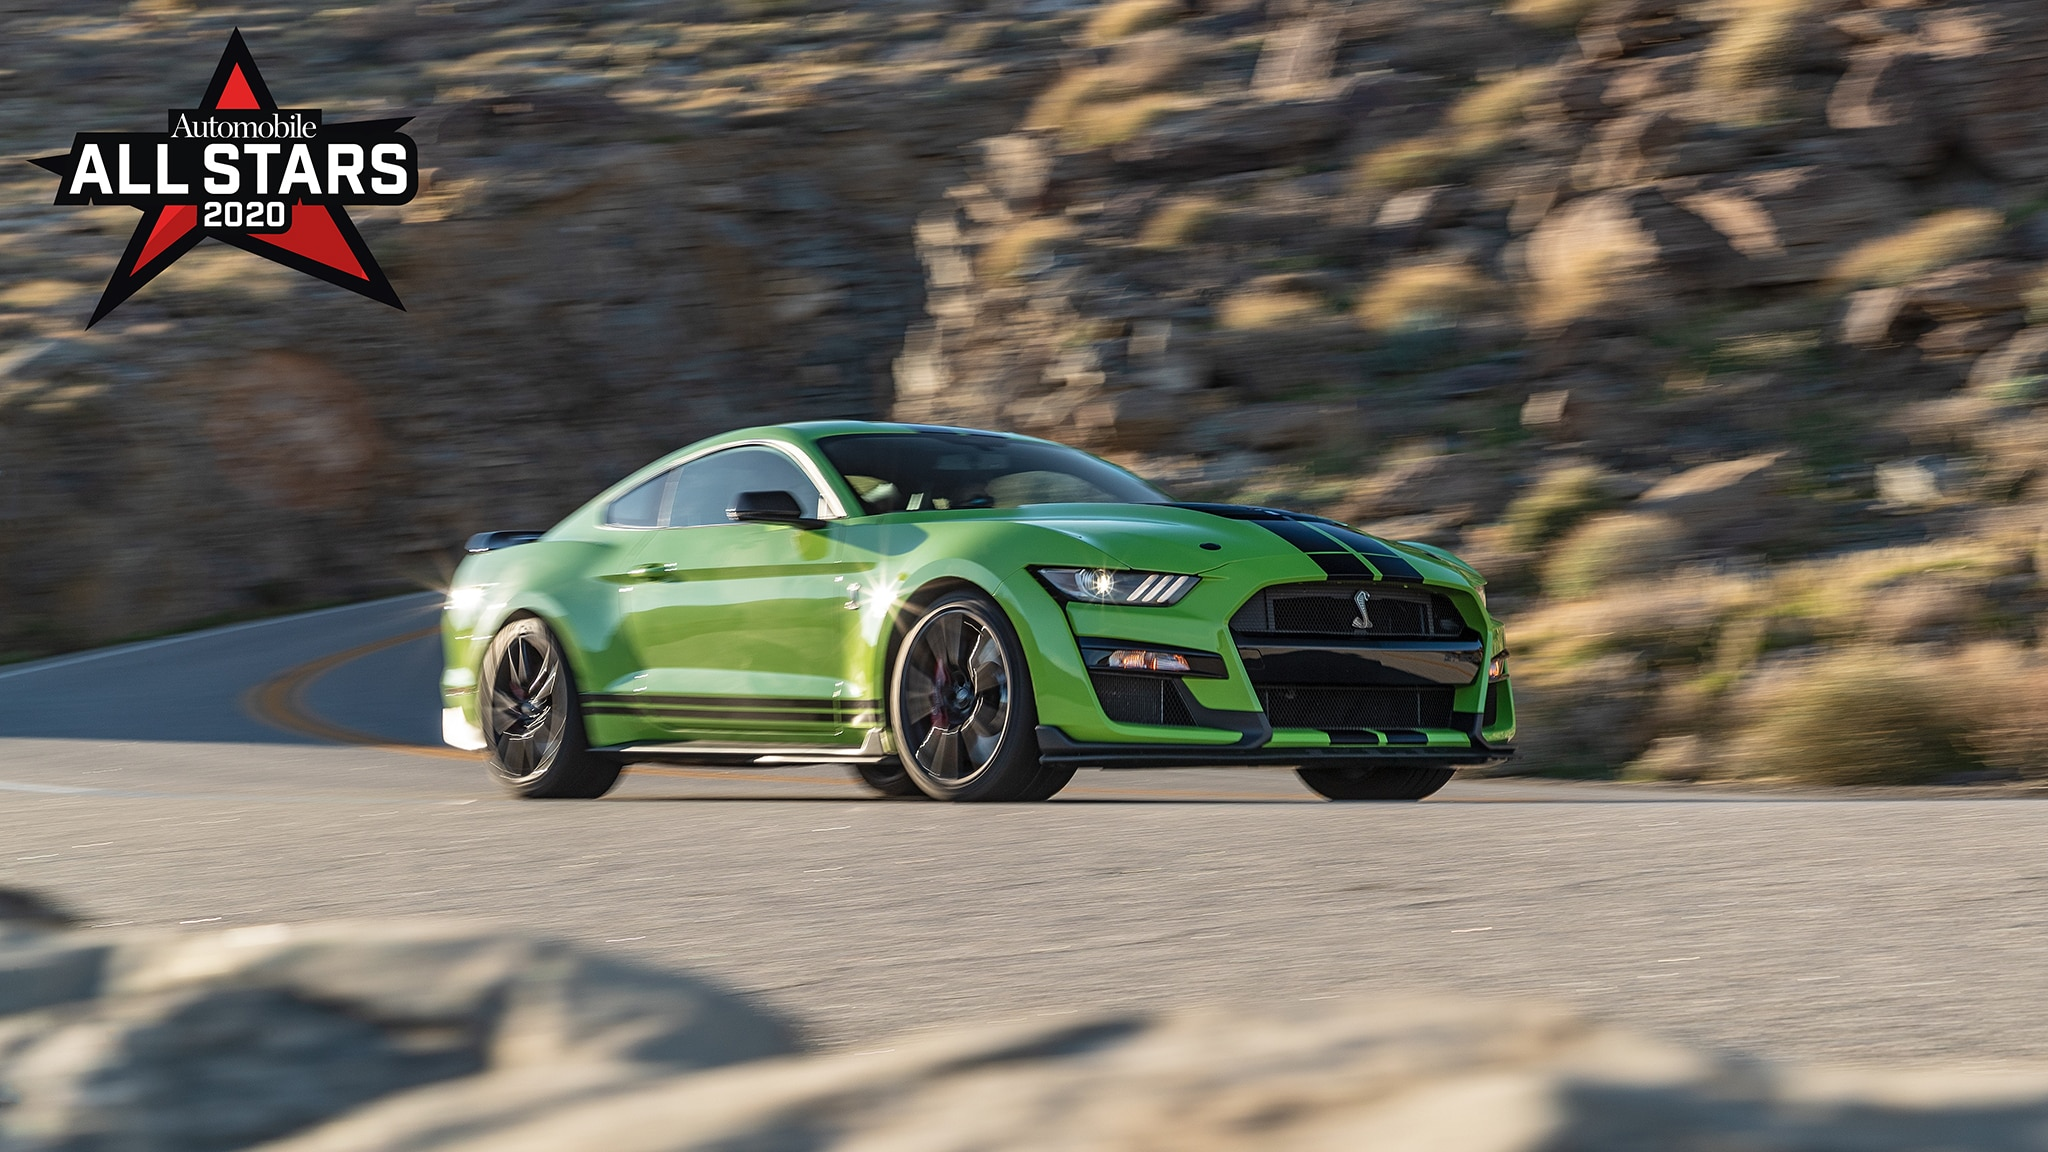 Unbelievable Ford Mustang Wallpapers - WallMK